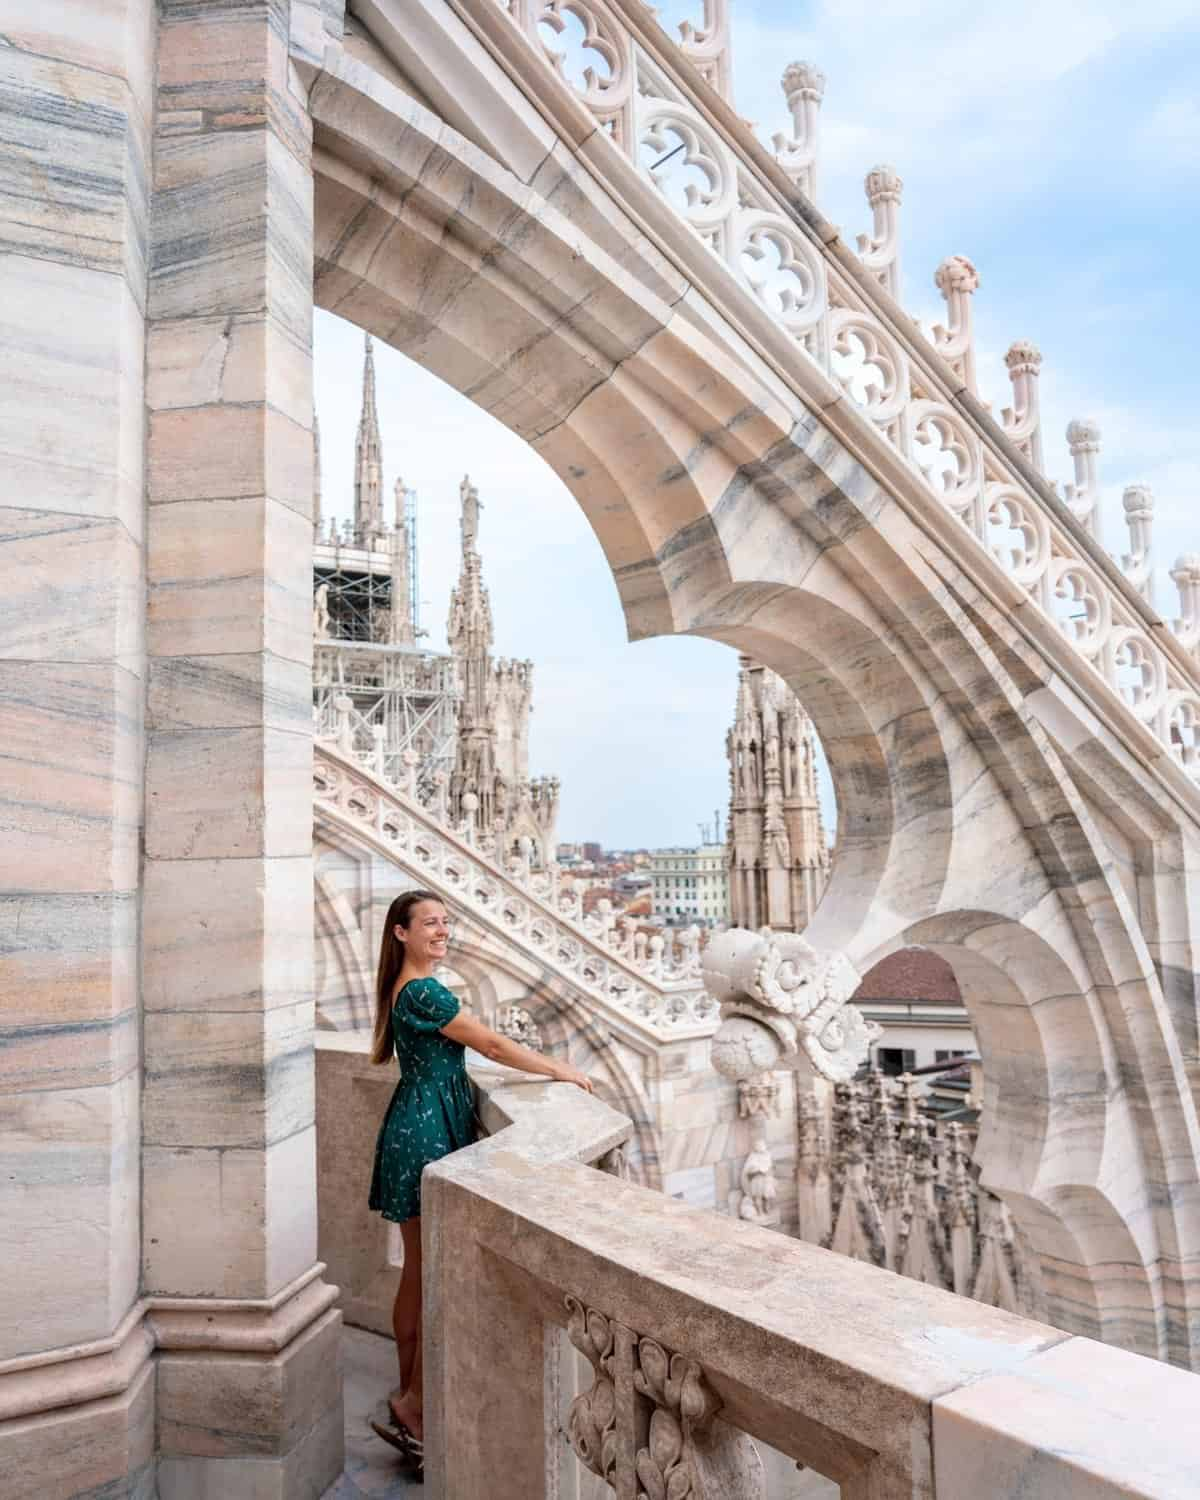 Admire the intricate details of the rooftop of Duomo di Milano during 2 days in Milan